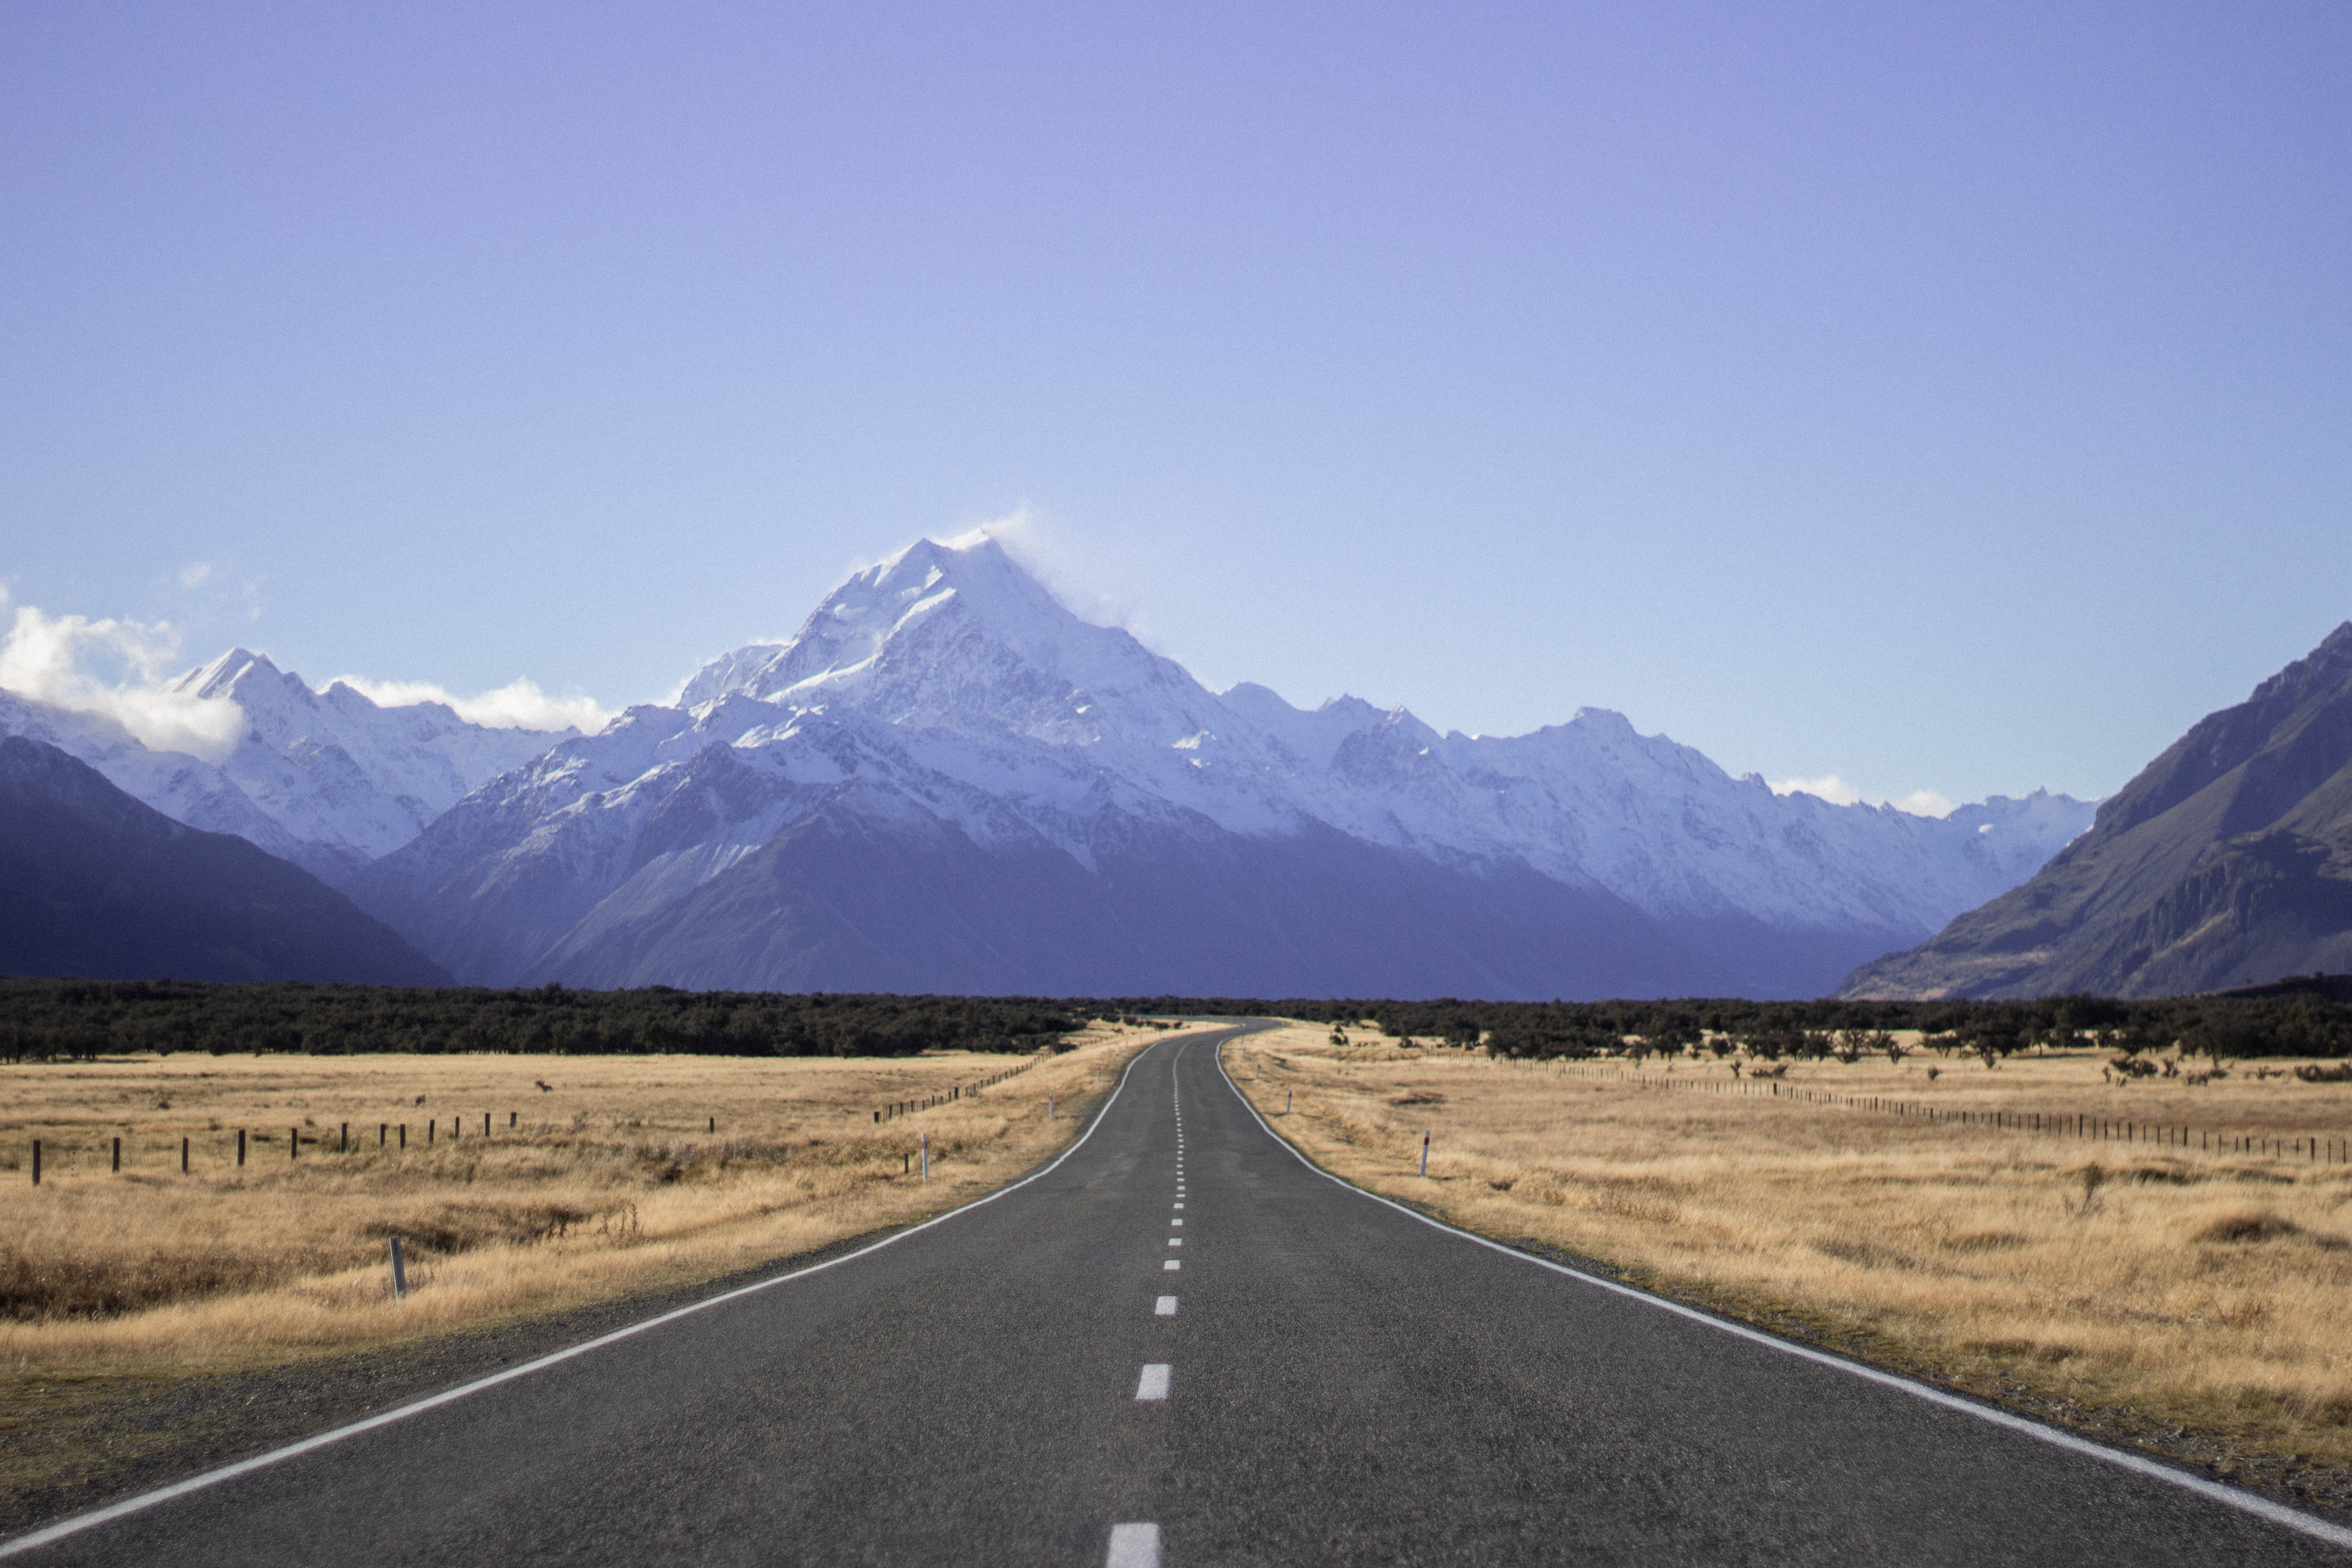 landscape photography of empty dessert road under blue calm sky with mountain view